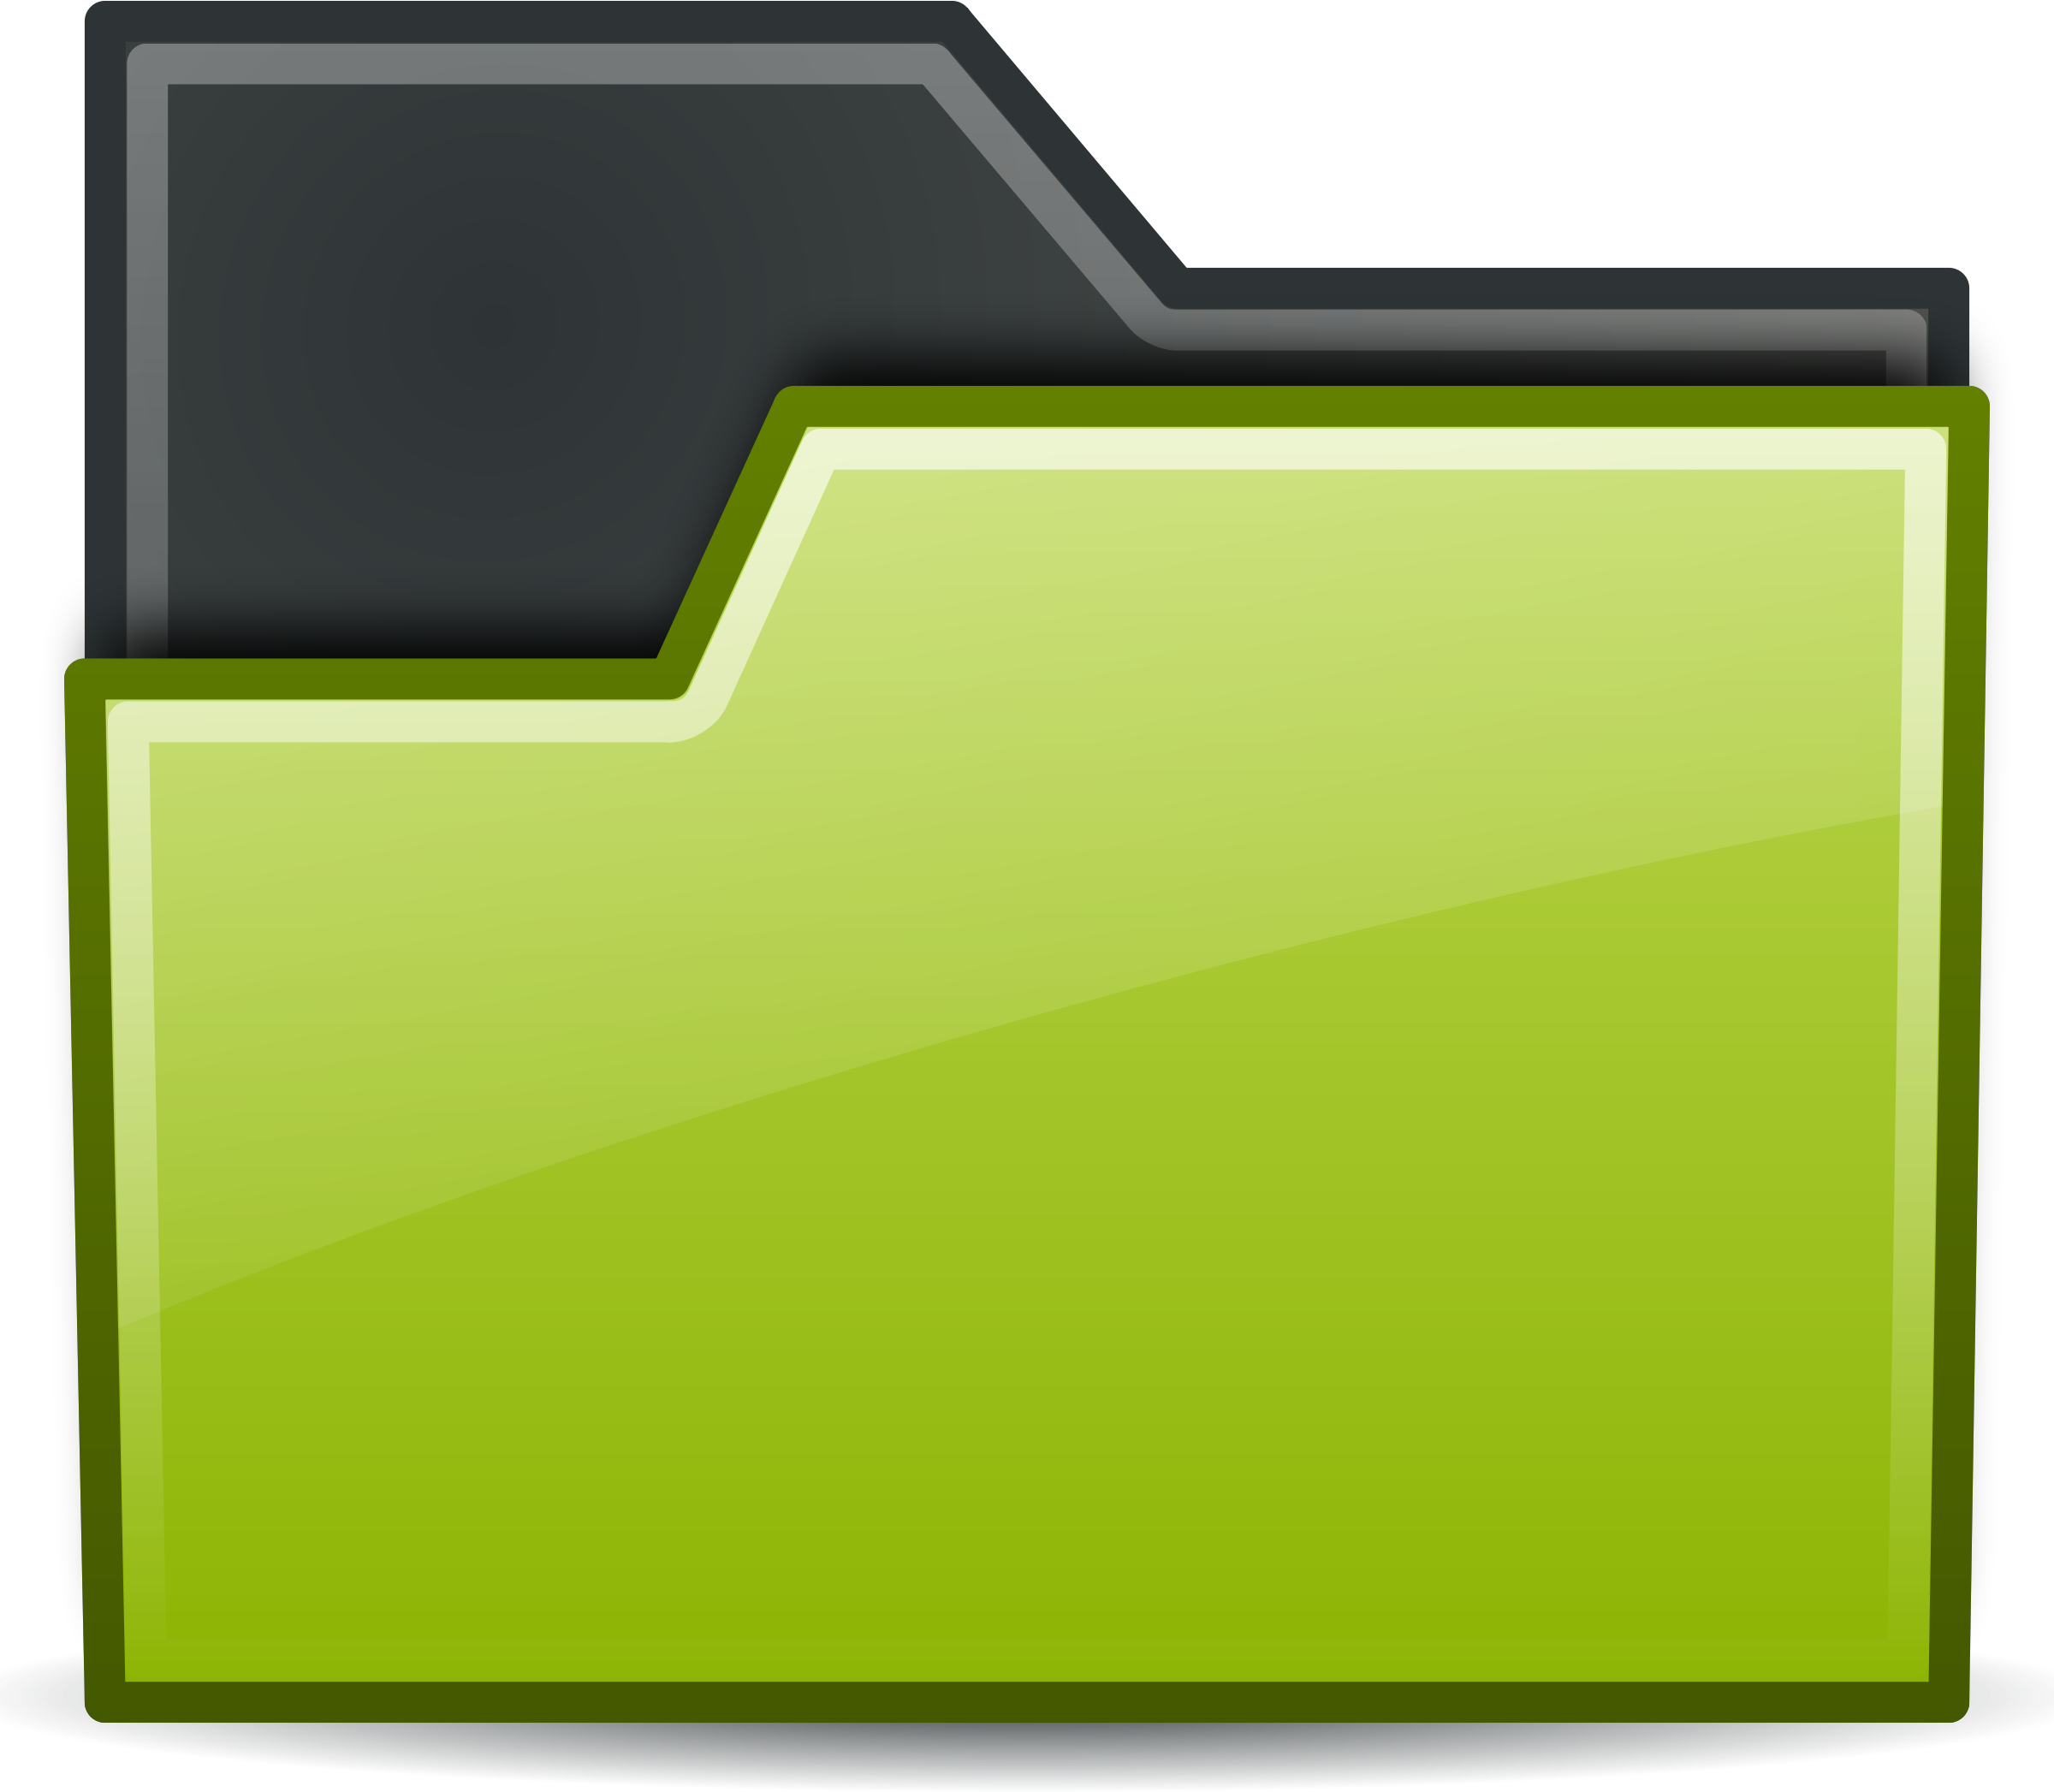 Green folder png. Rodentia icons free and